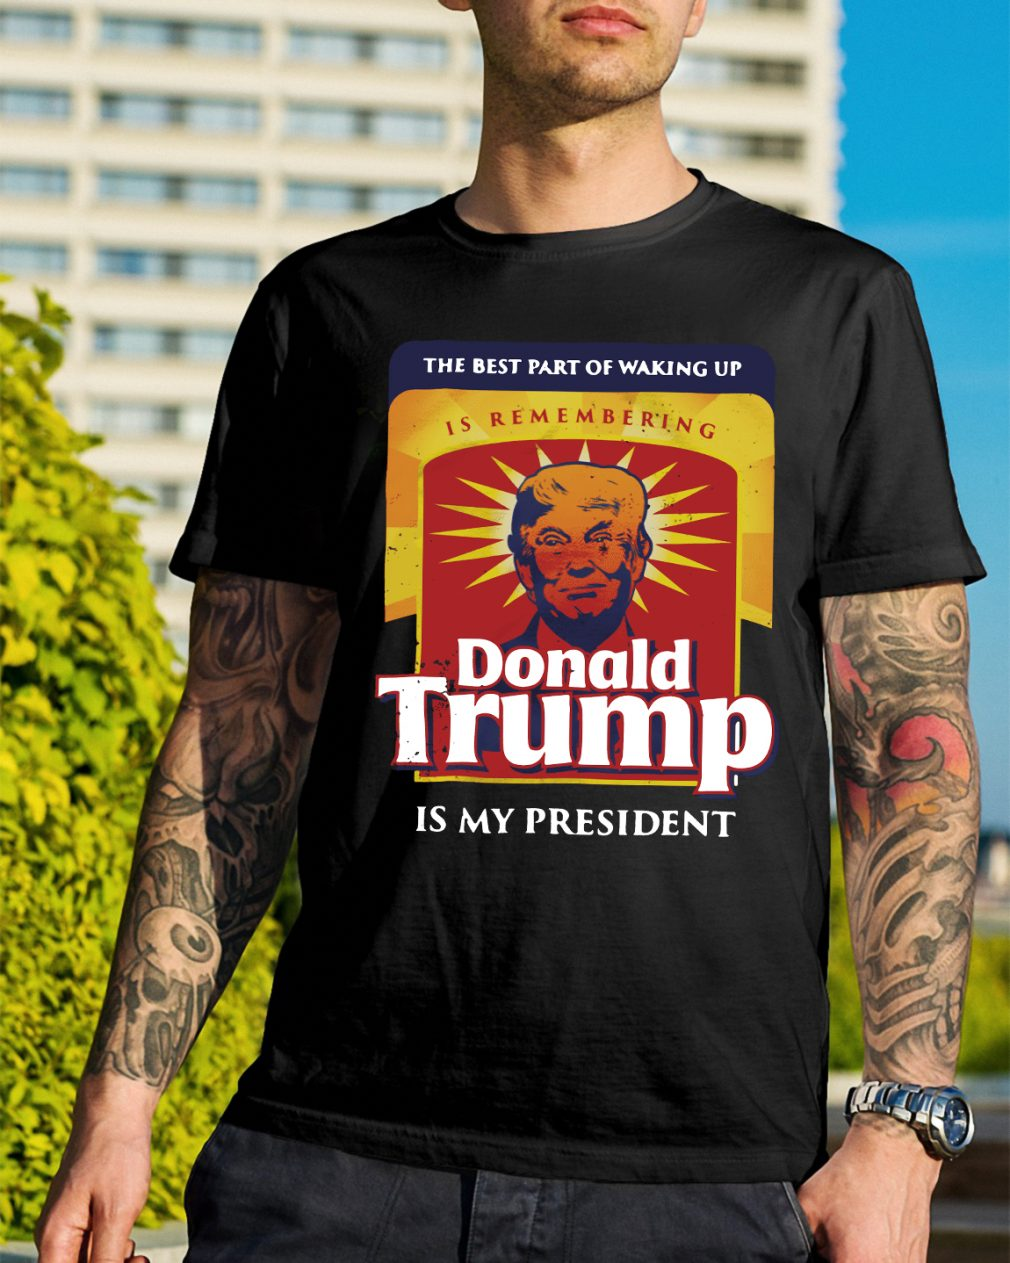 Official The best part of waking up is remembering Donald Trump shirt